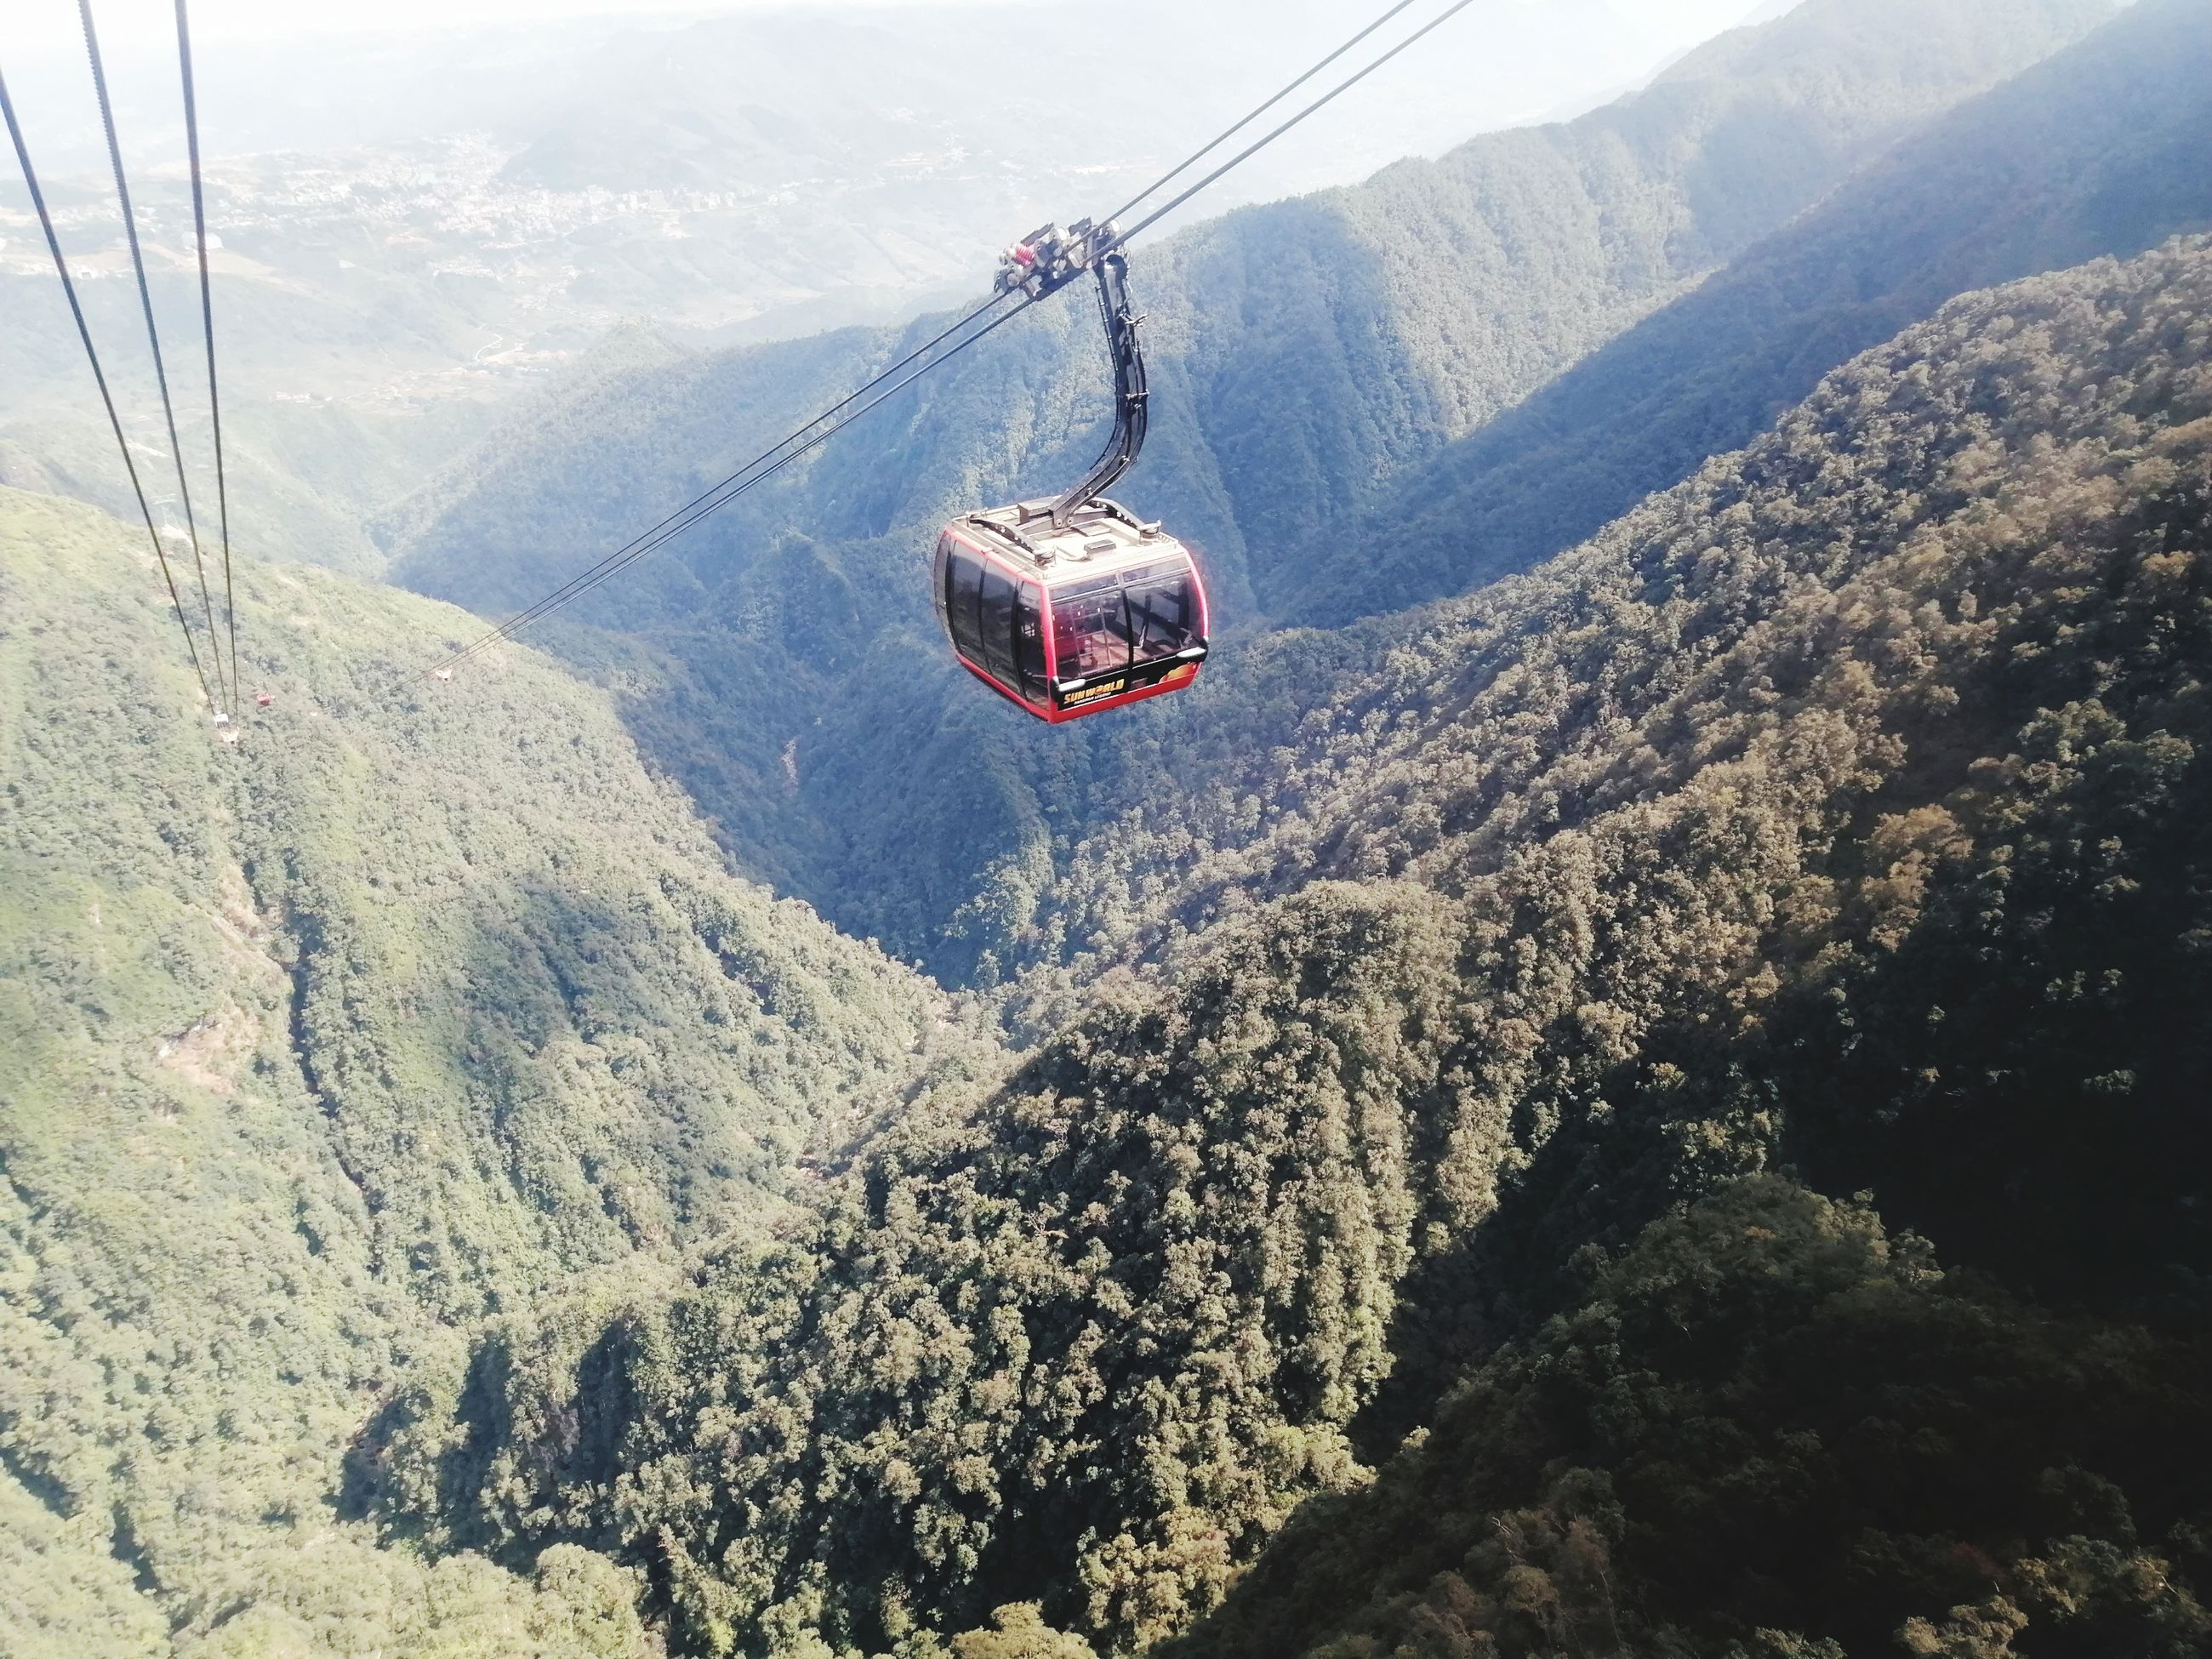 mountain, overhead cable car, cable car, transportation, scenics - nature, day, beauty in nature, mountain range, nature, tree, cable, mode of transportation, ski lift, non-urban scene, mid-air, landscape, plant, tranquil scene, travel, environment, outdoors, no people